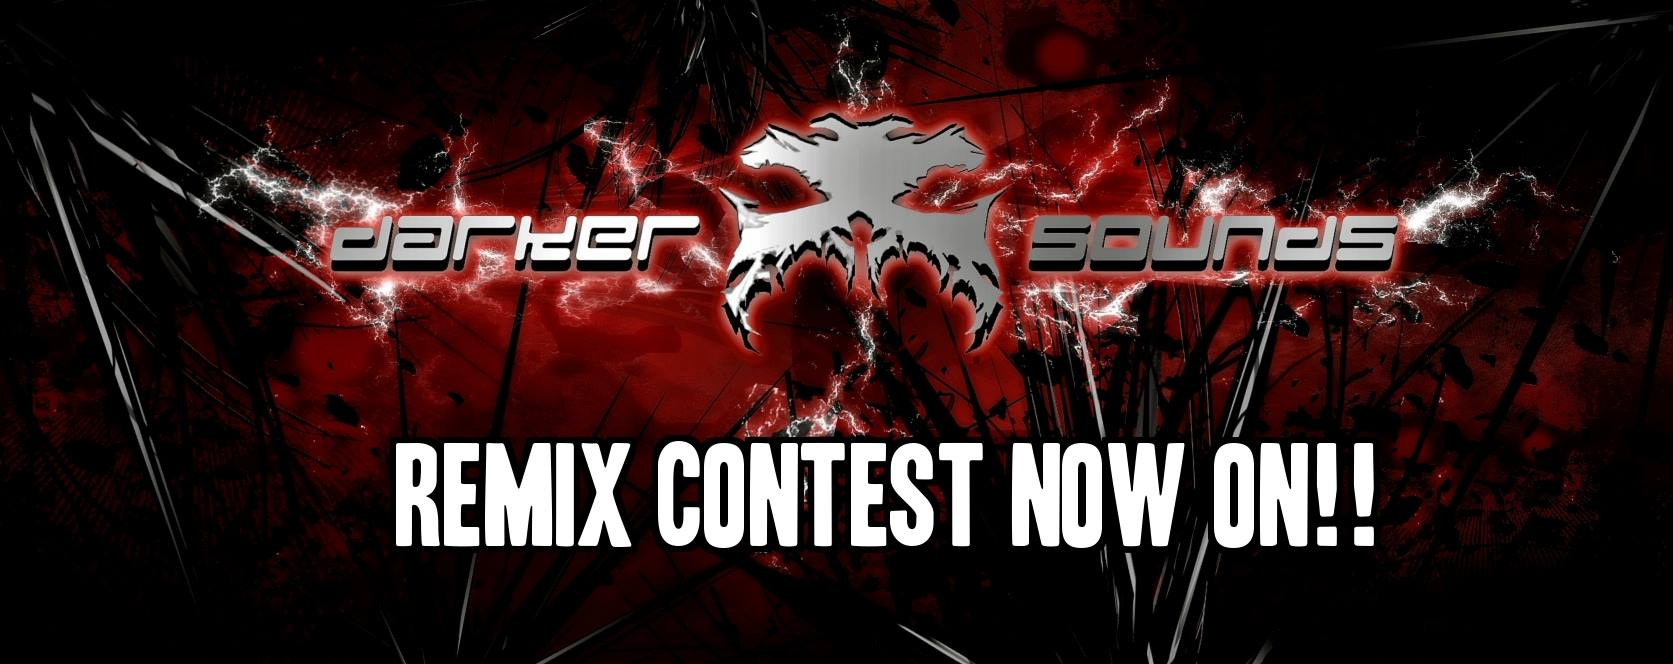 Darker Sounds Remix Contest 2016